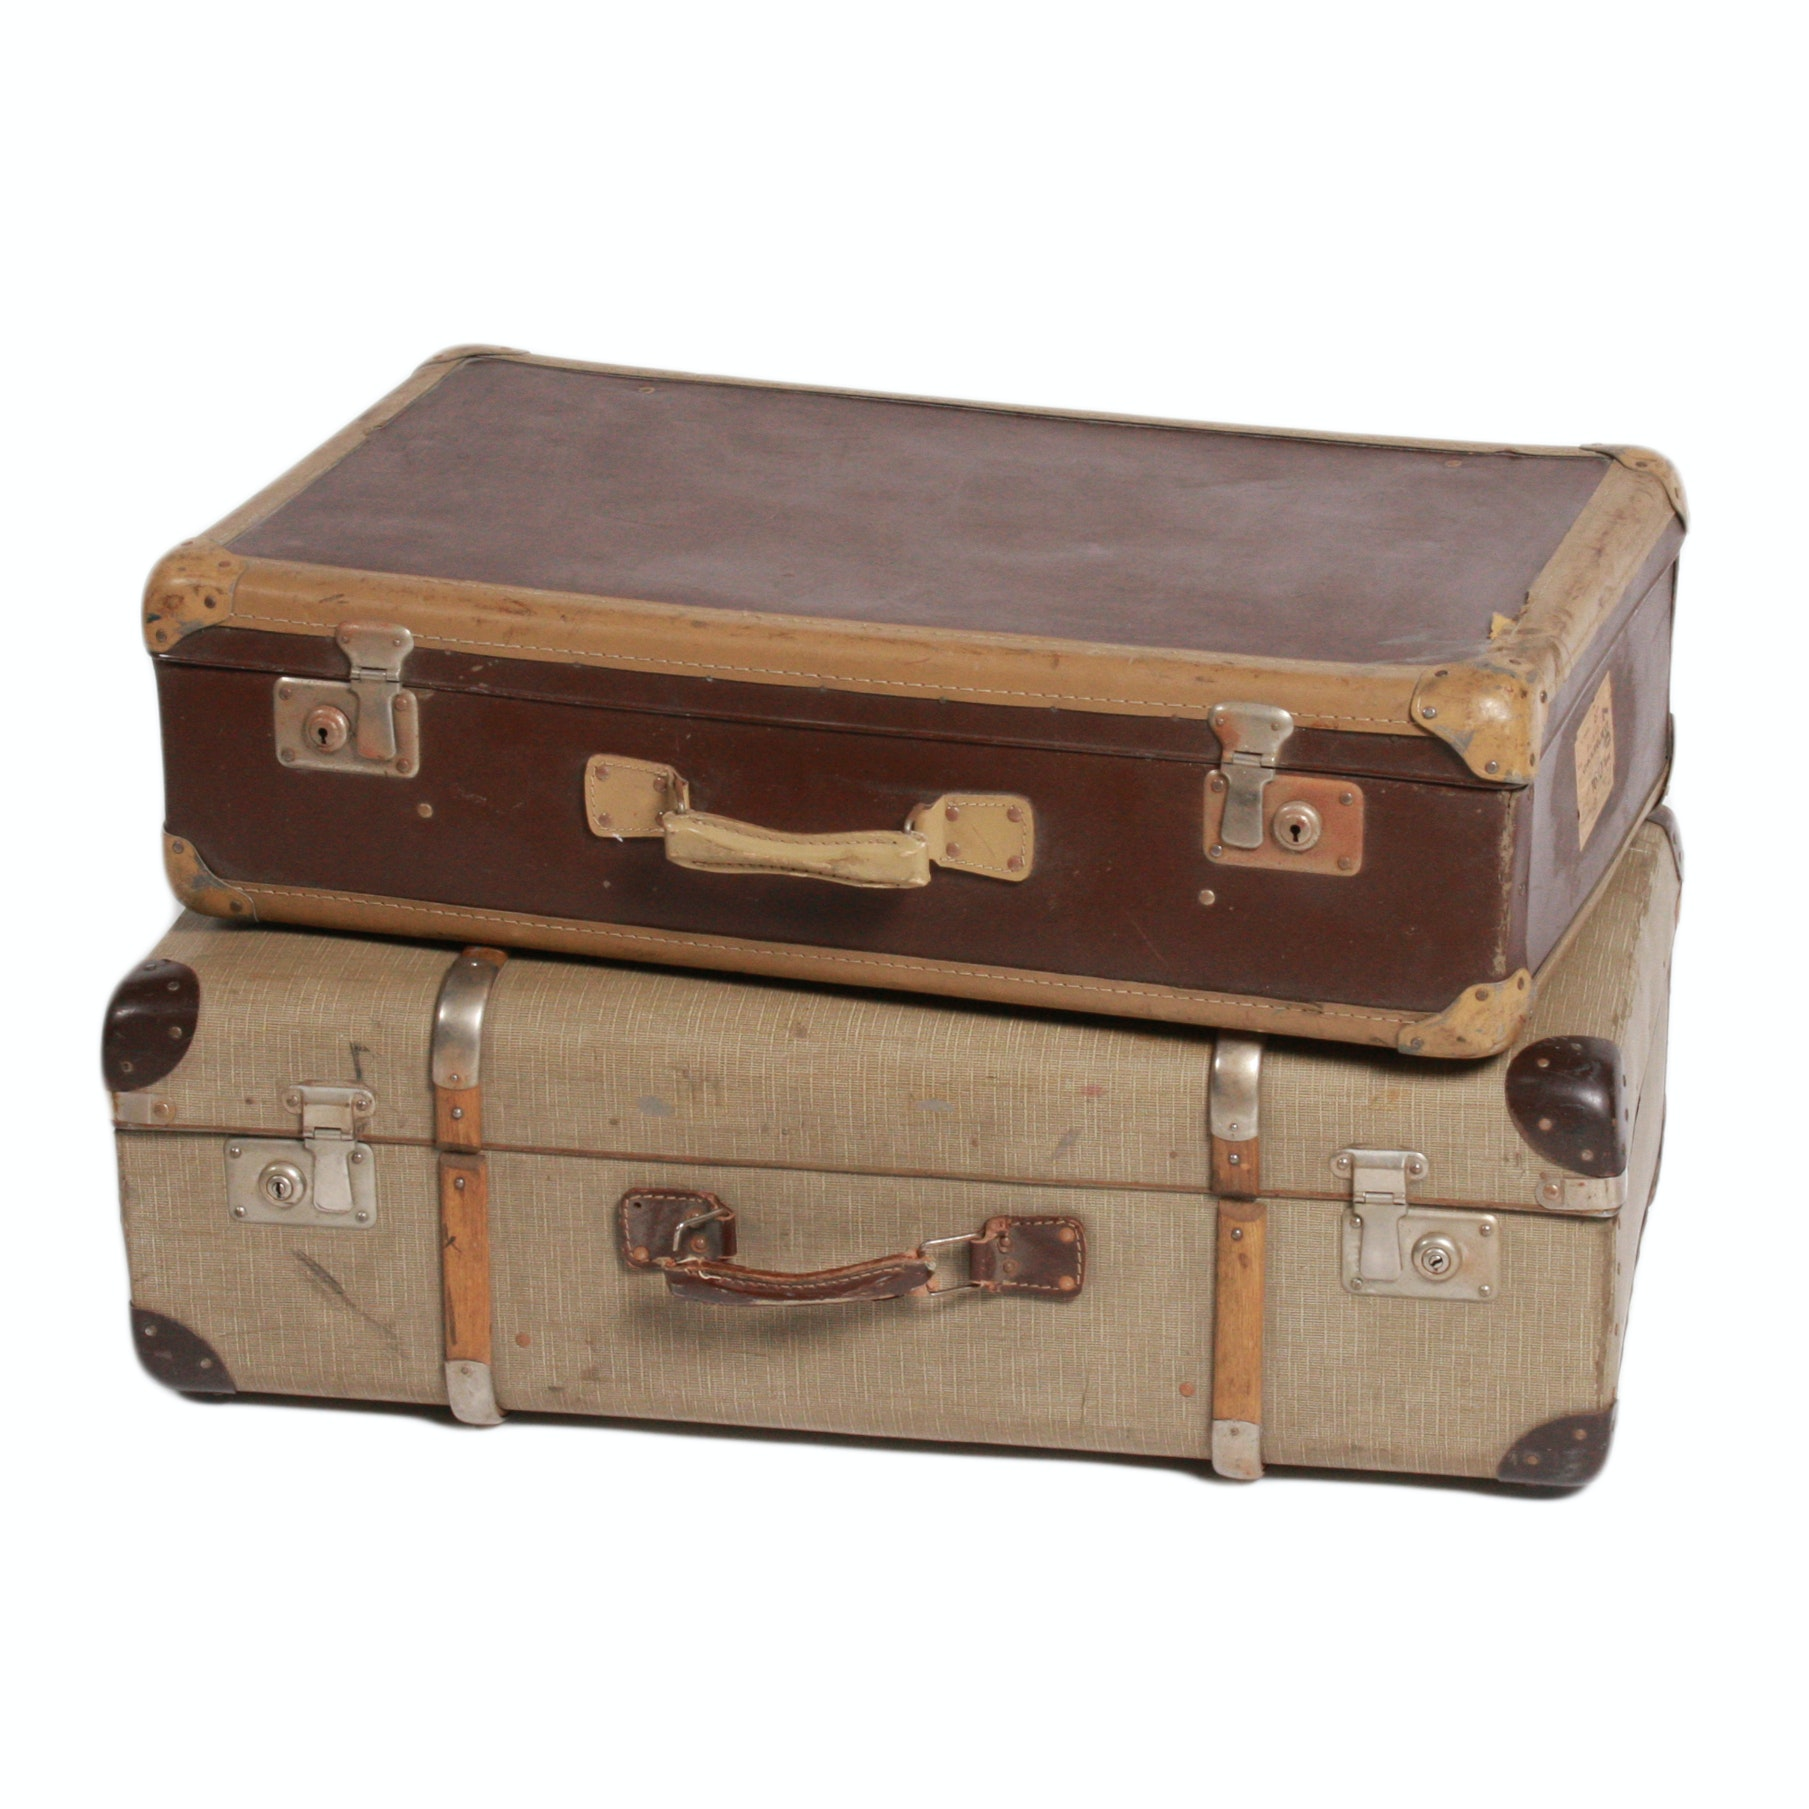 Vintage Brown and Tan Suitcases